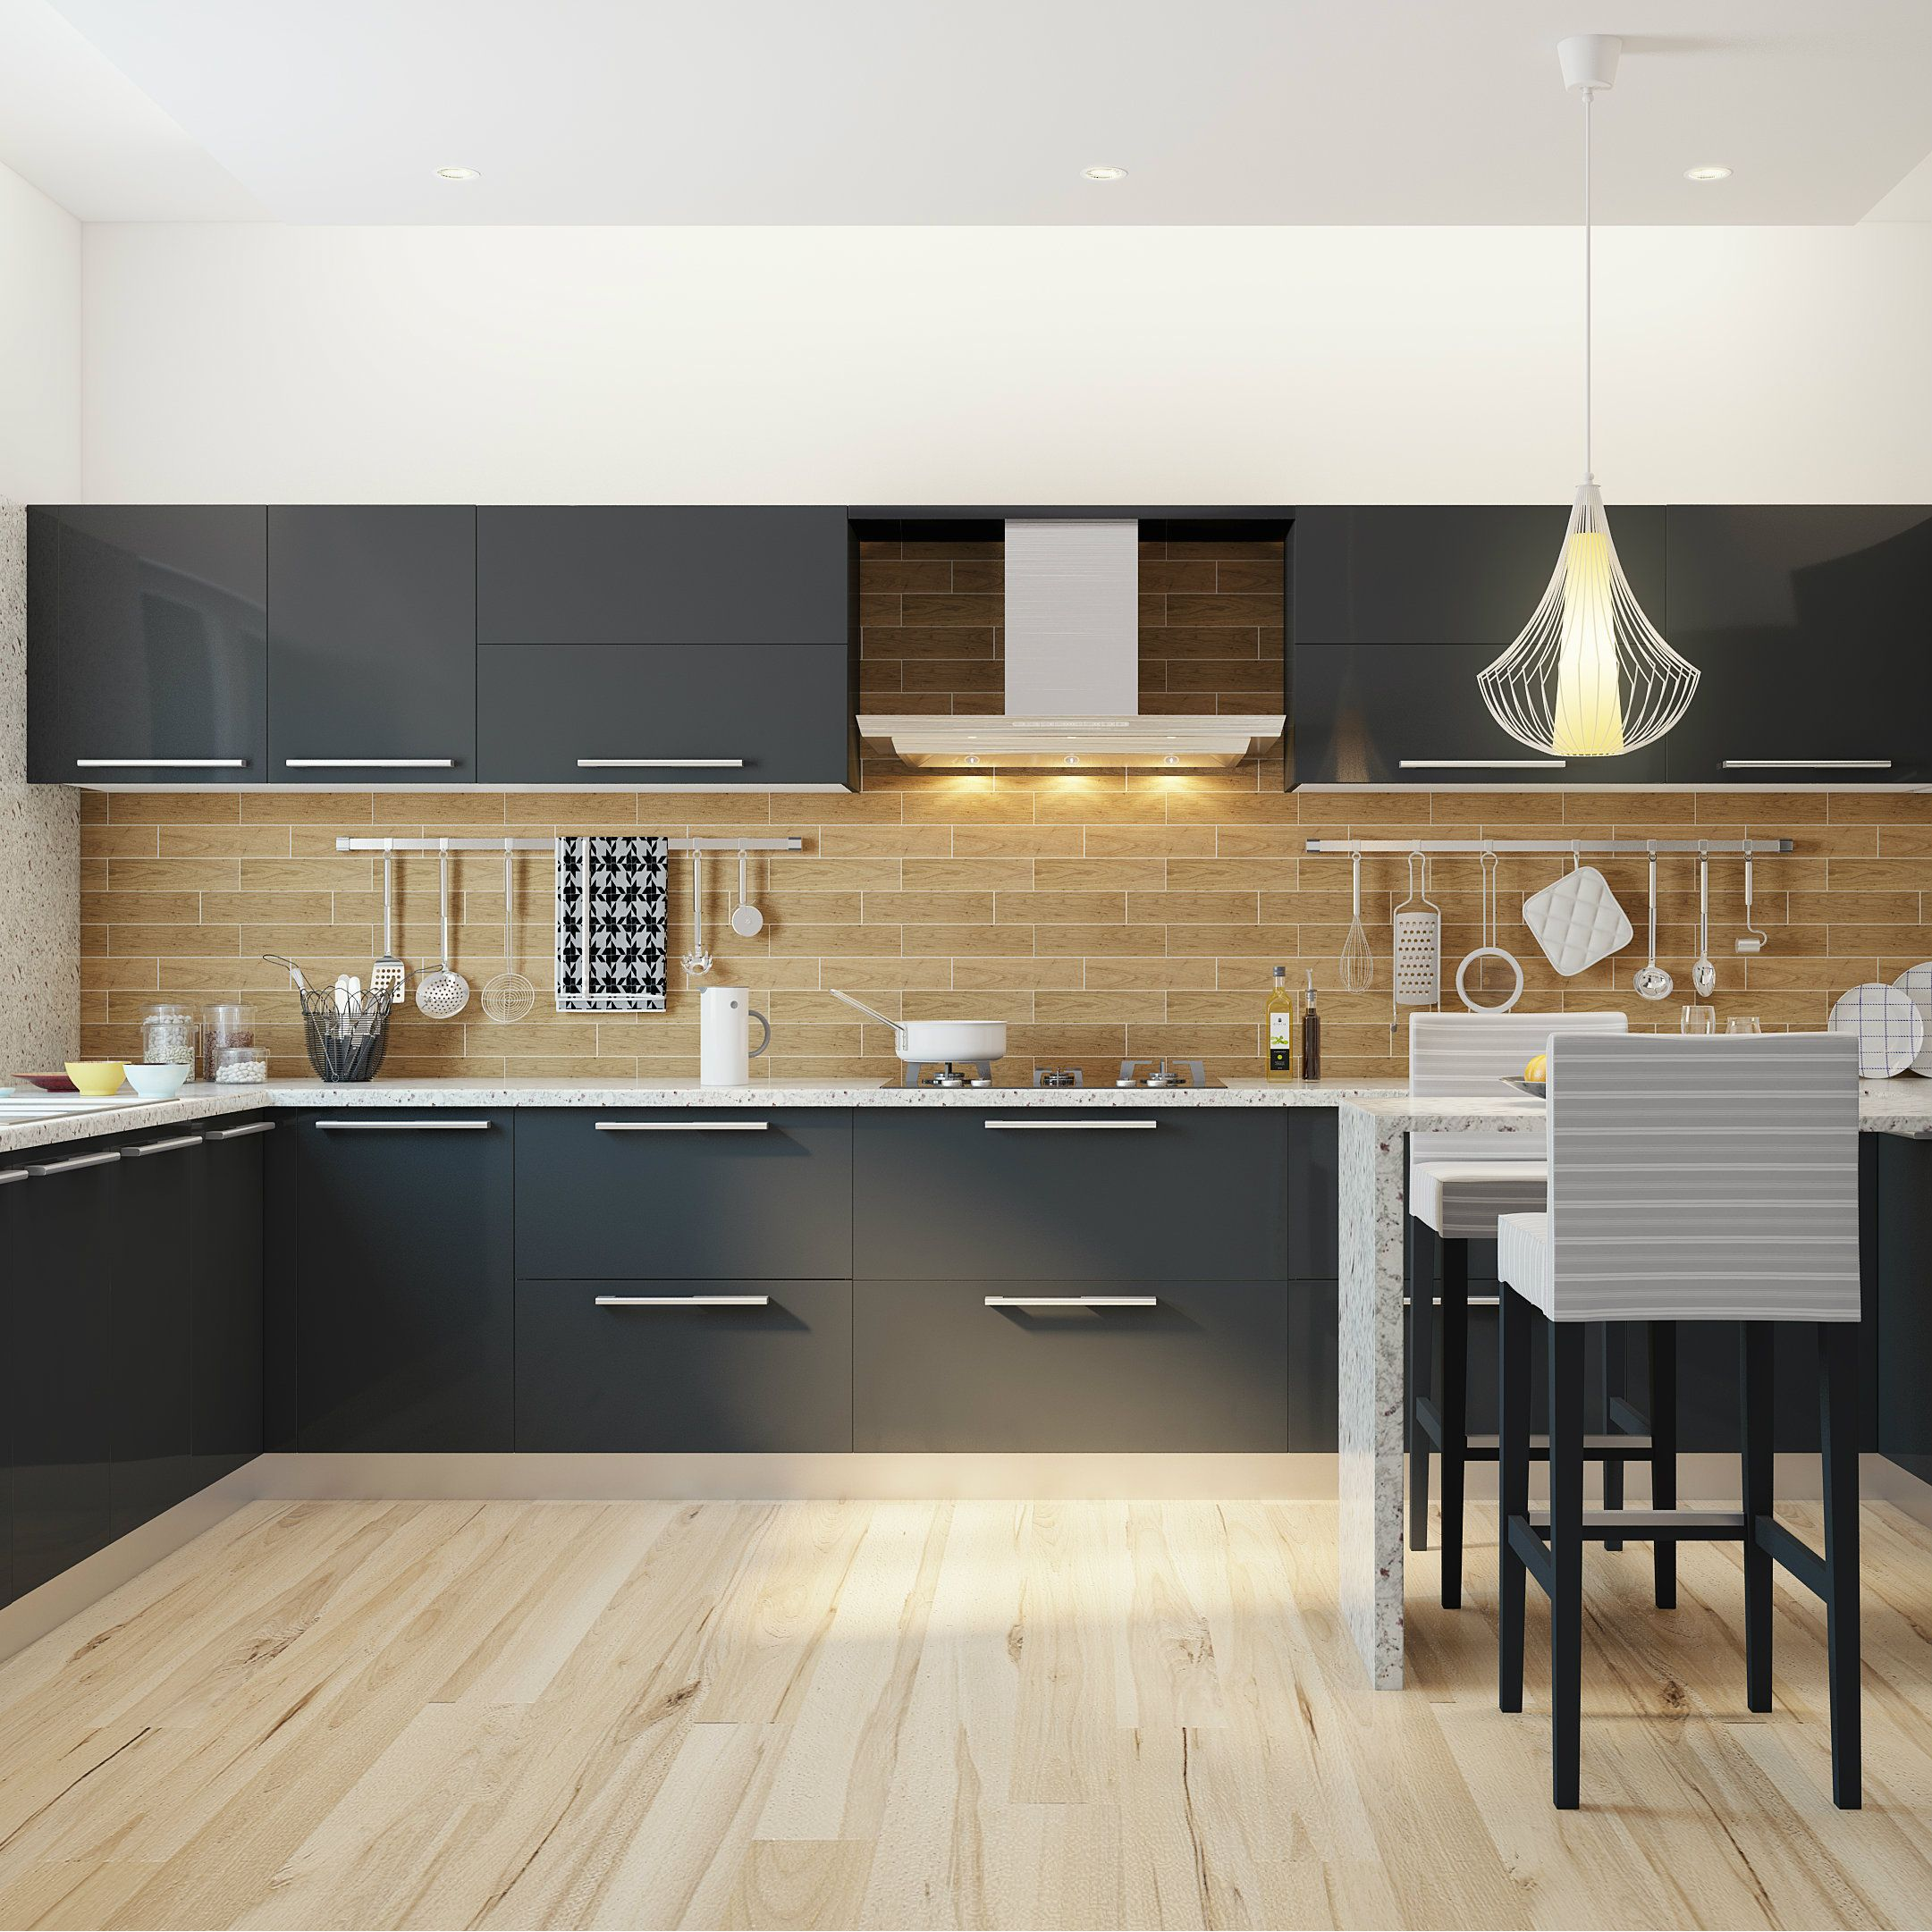 sprawling modular kitchen with a breakfast counter perfect for modern indian homes modular on kitchen island ideas india id=39771